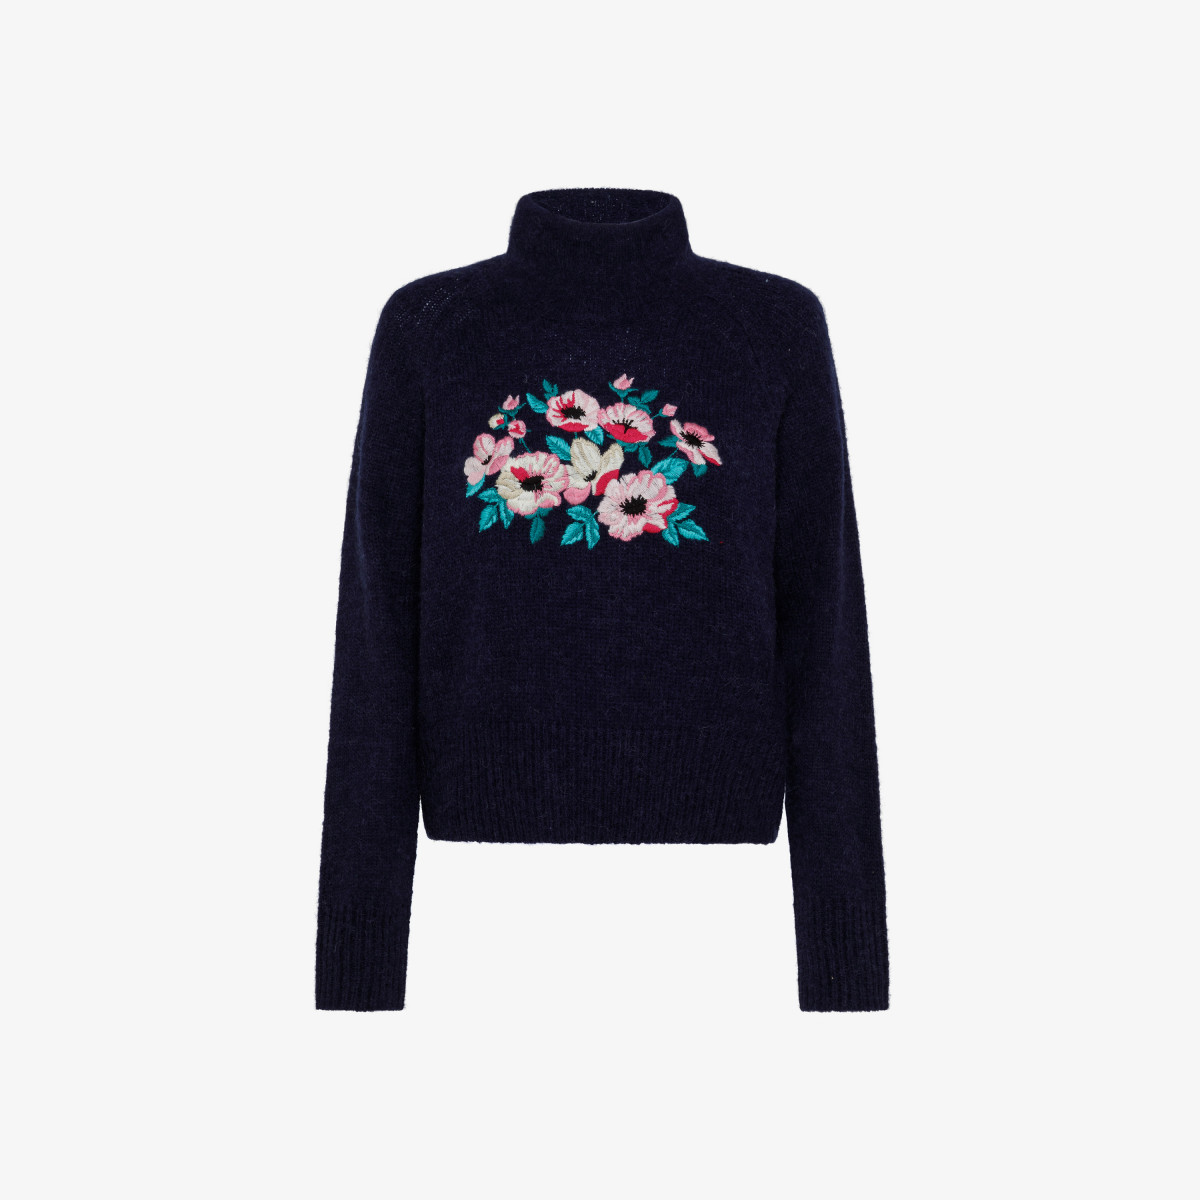 HIGH NECK EMBRODERY L/S NAVY BLUE